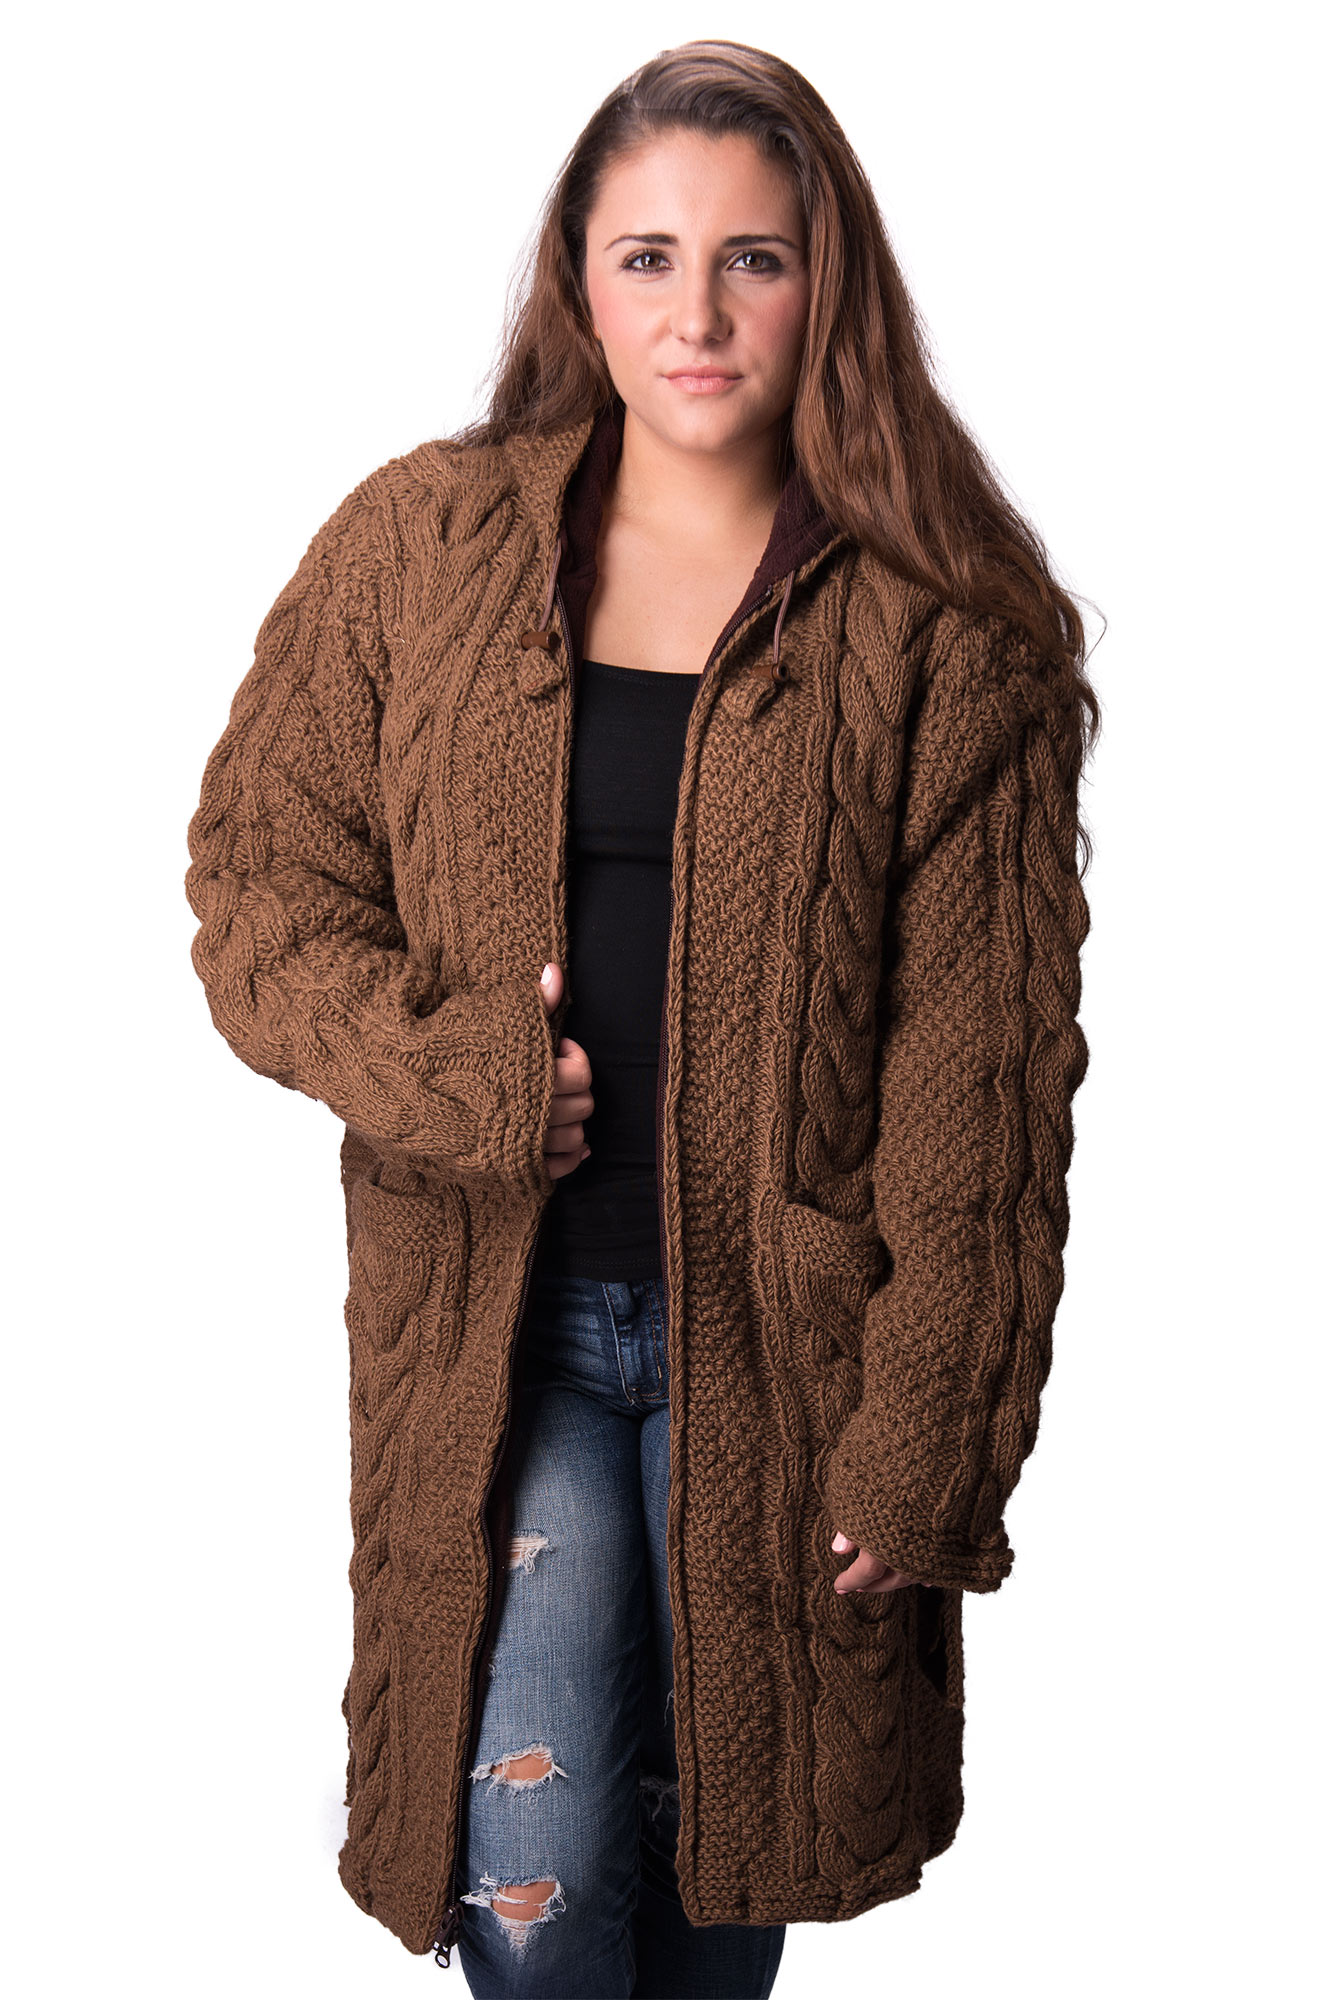 Himalayan Mountain Jacket Full Length Cable Knit, Brown